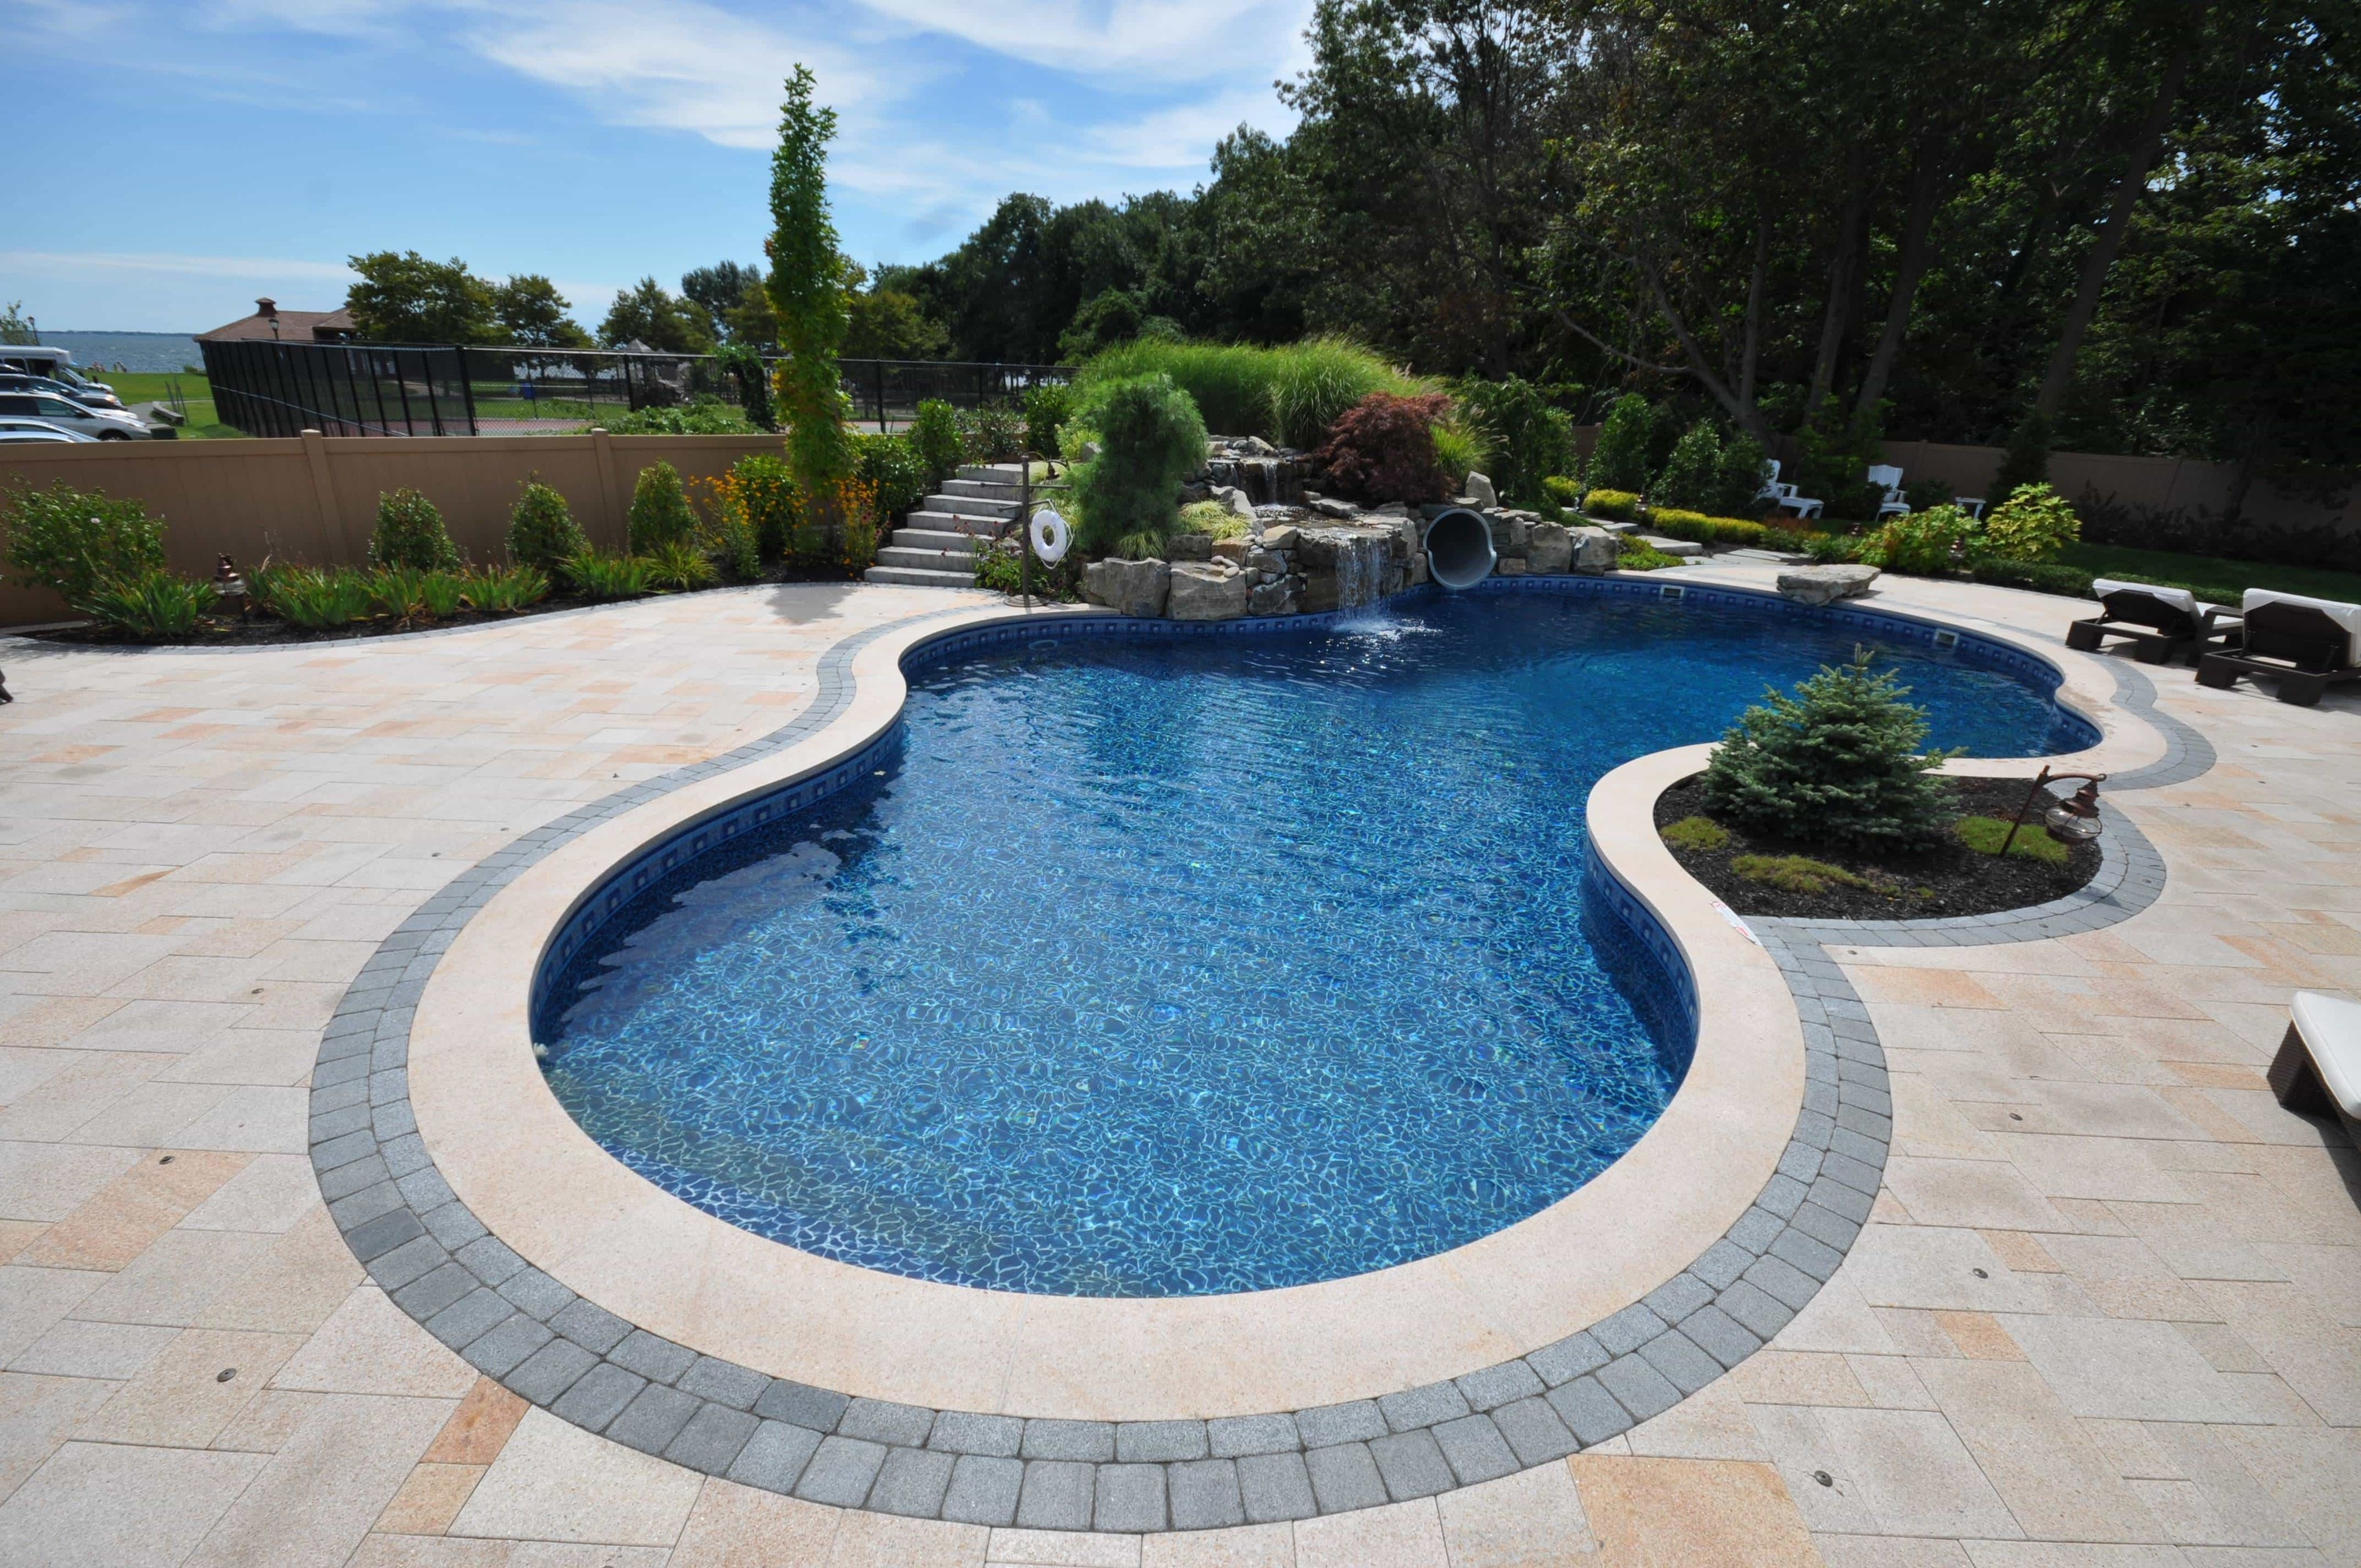 https://gappsi.com/wp-content/uploads/2017/11/Granite-pavers-and-pool-copimgs-Long-island-NY-Gappsi.jpg